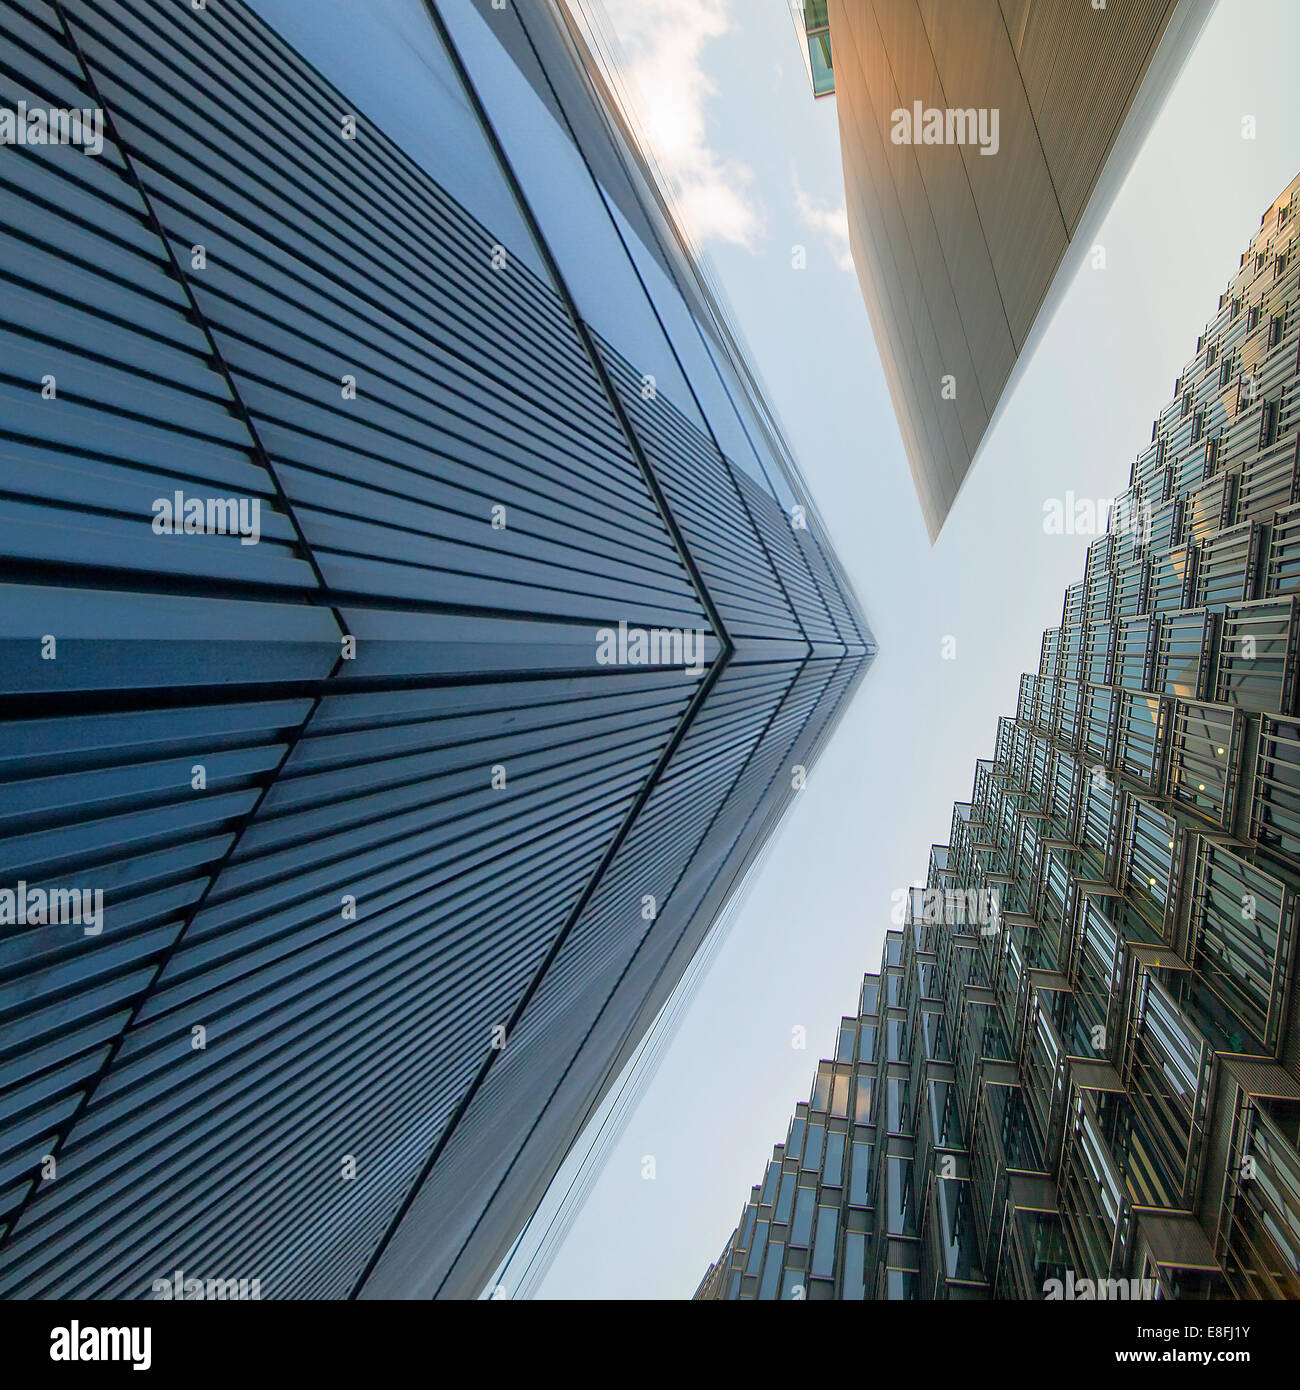 Low angle view of office buildings, London, England, UK - Stock Image